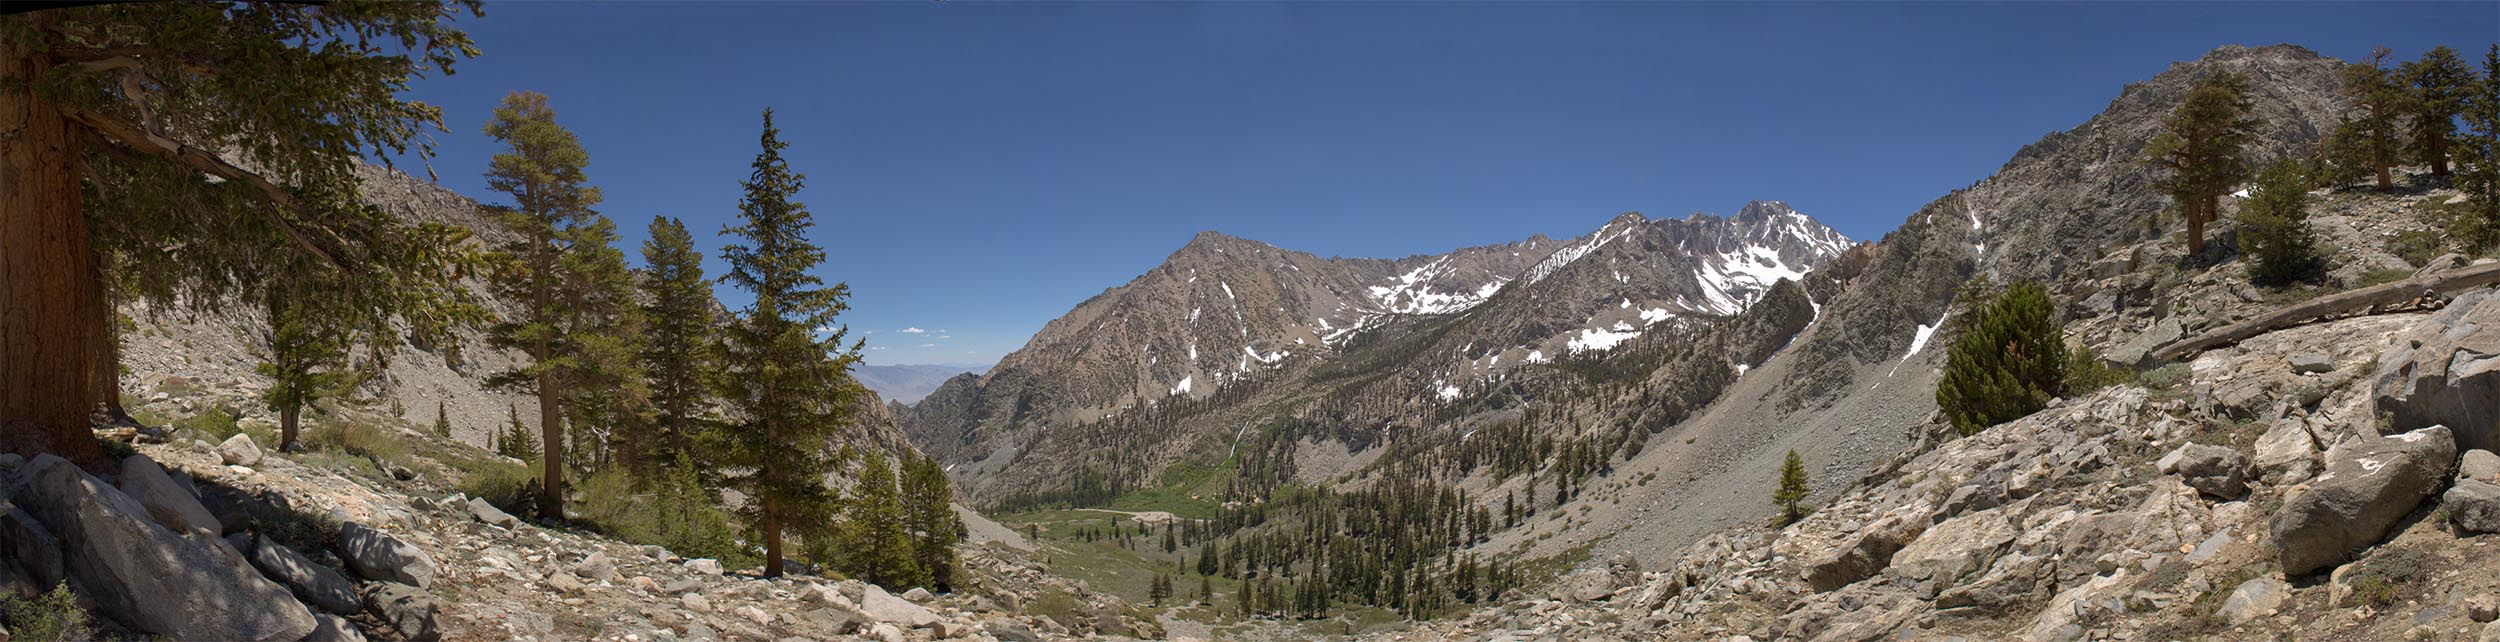 Looking down into Onion Valley.